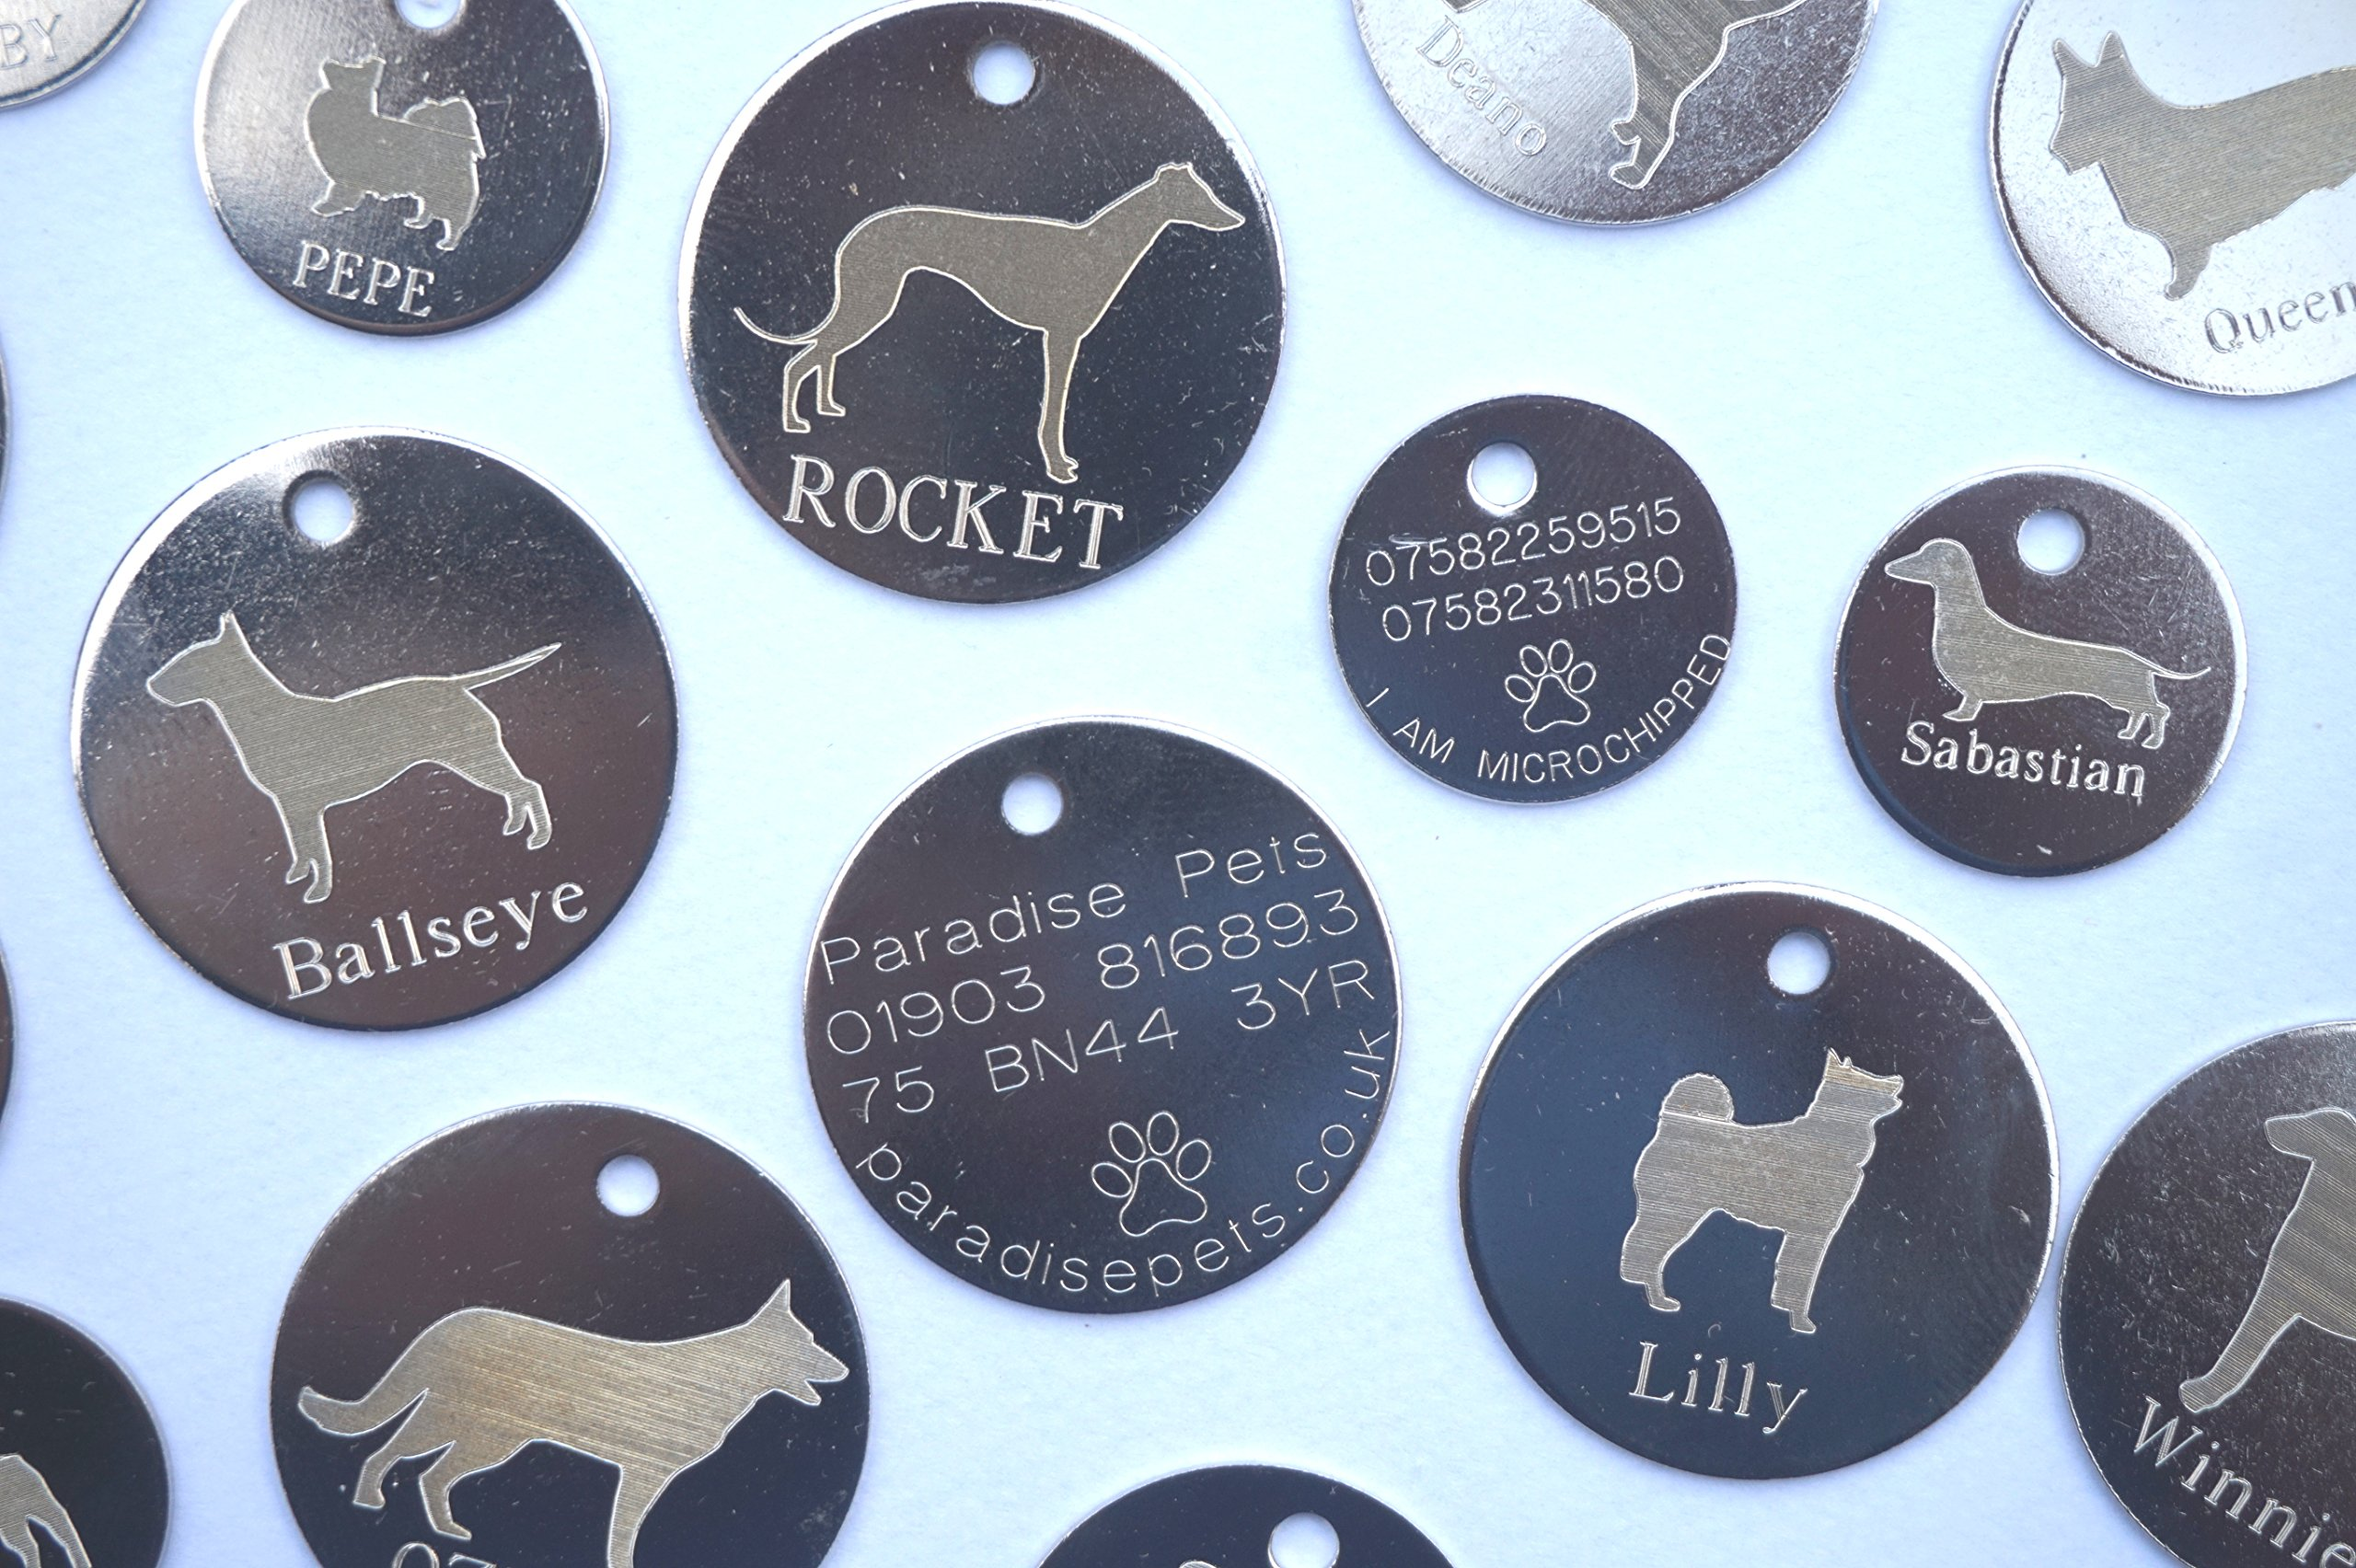 Paradise Pets Personalised Dog Pet Identity ID Tag Disc Engraved – tick gift message box to leave engraving details…